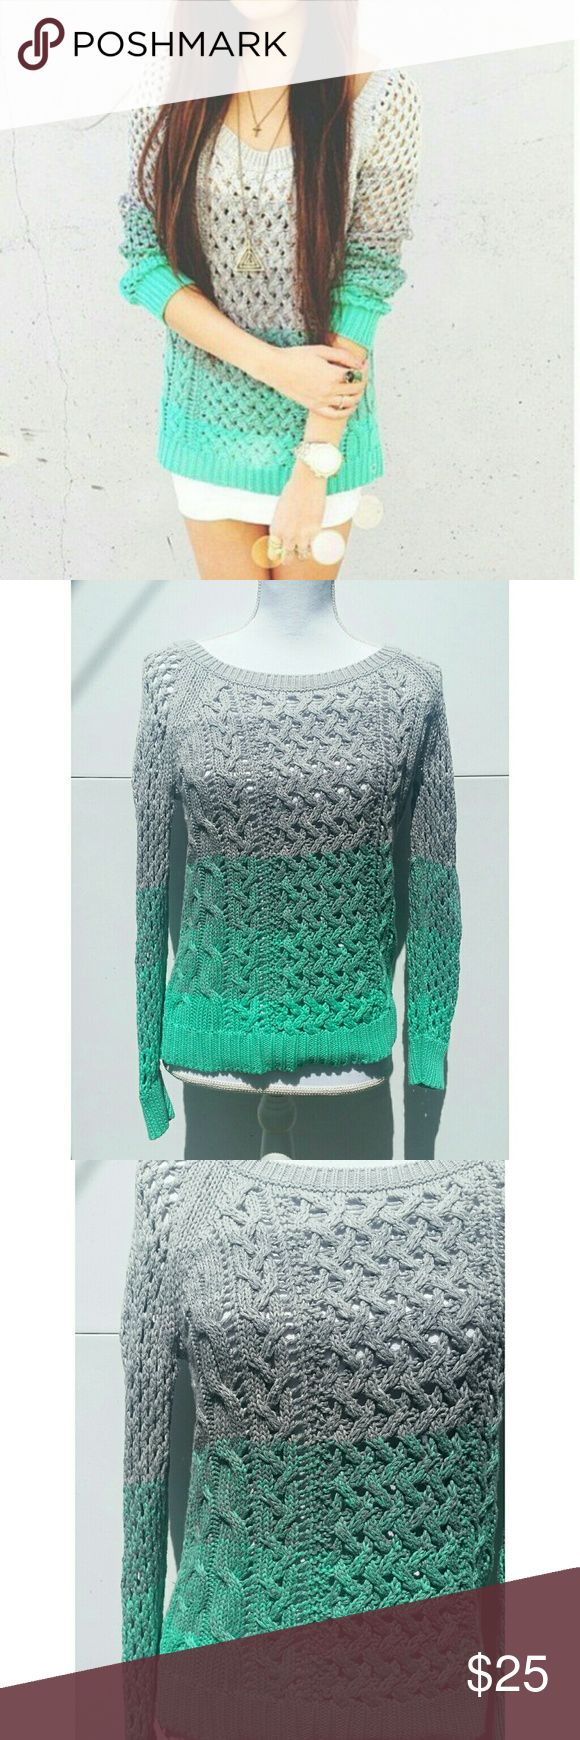 American Eagle Gray Mint Ombre Loose Knit Sweater American Eagle Outfitters Gray Mint Ombre Loose Knit Sweater. Like NEW. Size small. American Eagle Outfitters Tops Sweatshirts & Hoodies